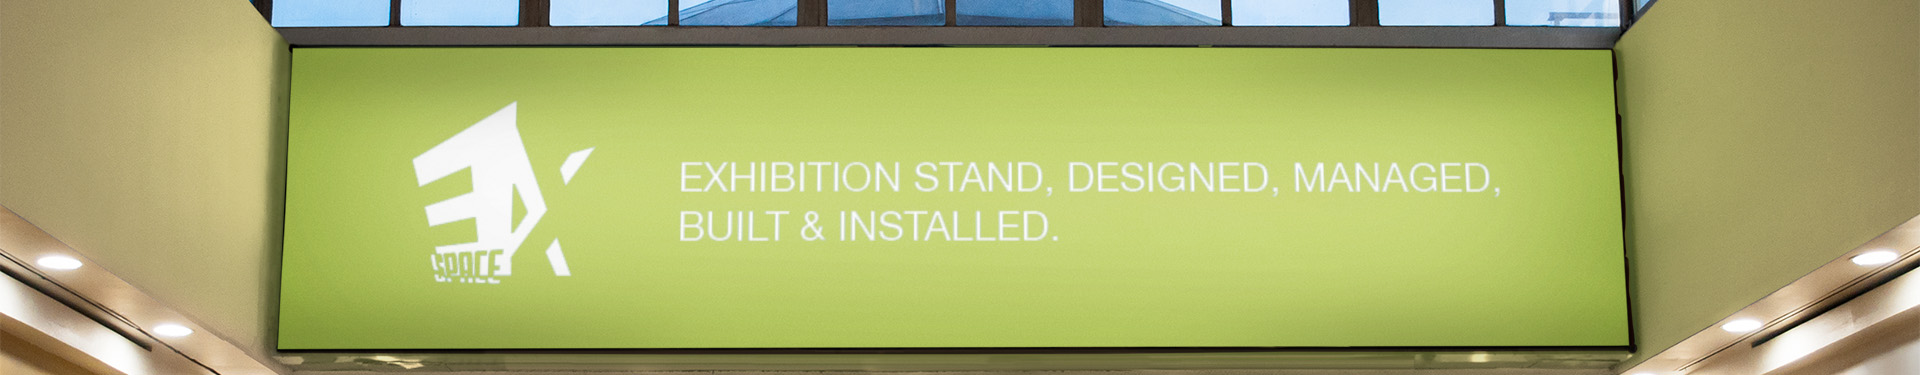 product-banner-green-1